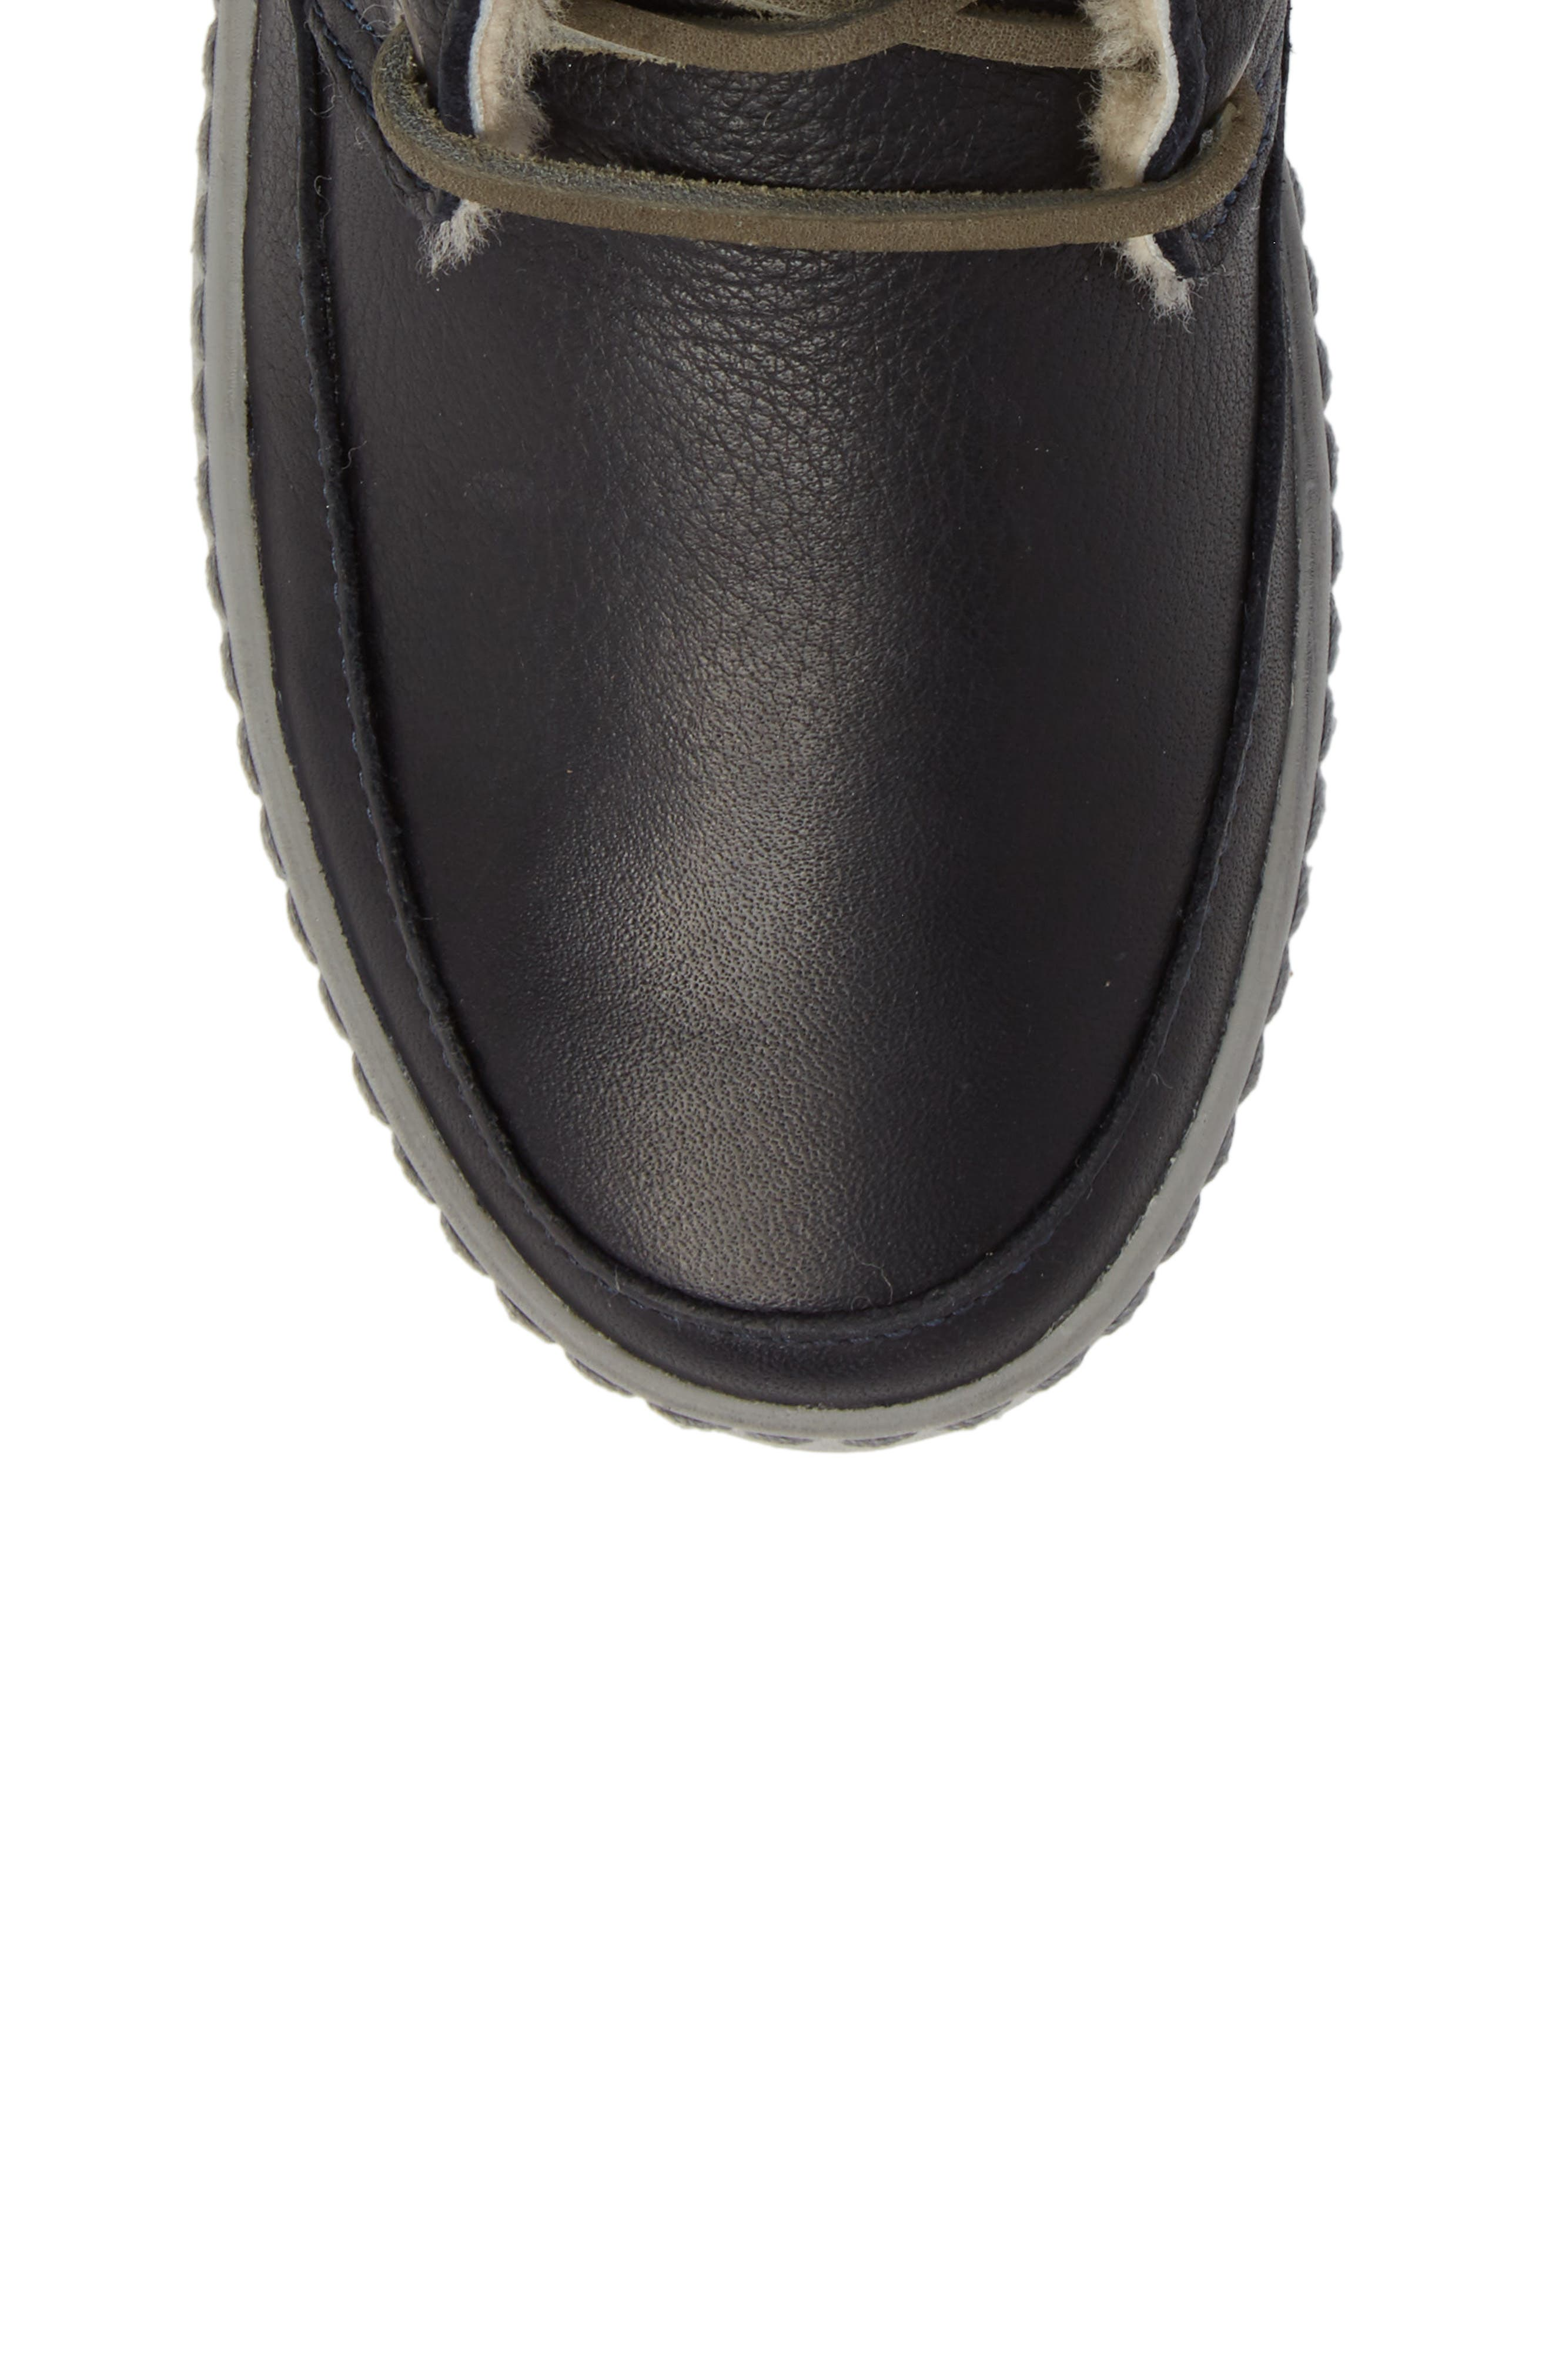 'CW96' Genuine Shearling Lined Sneaker Boot,                             Alternate thumbnail 5, color,                             Dark Indigo Leather